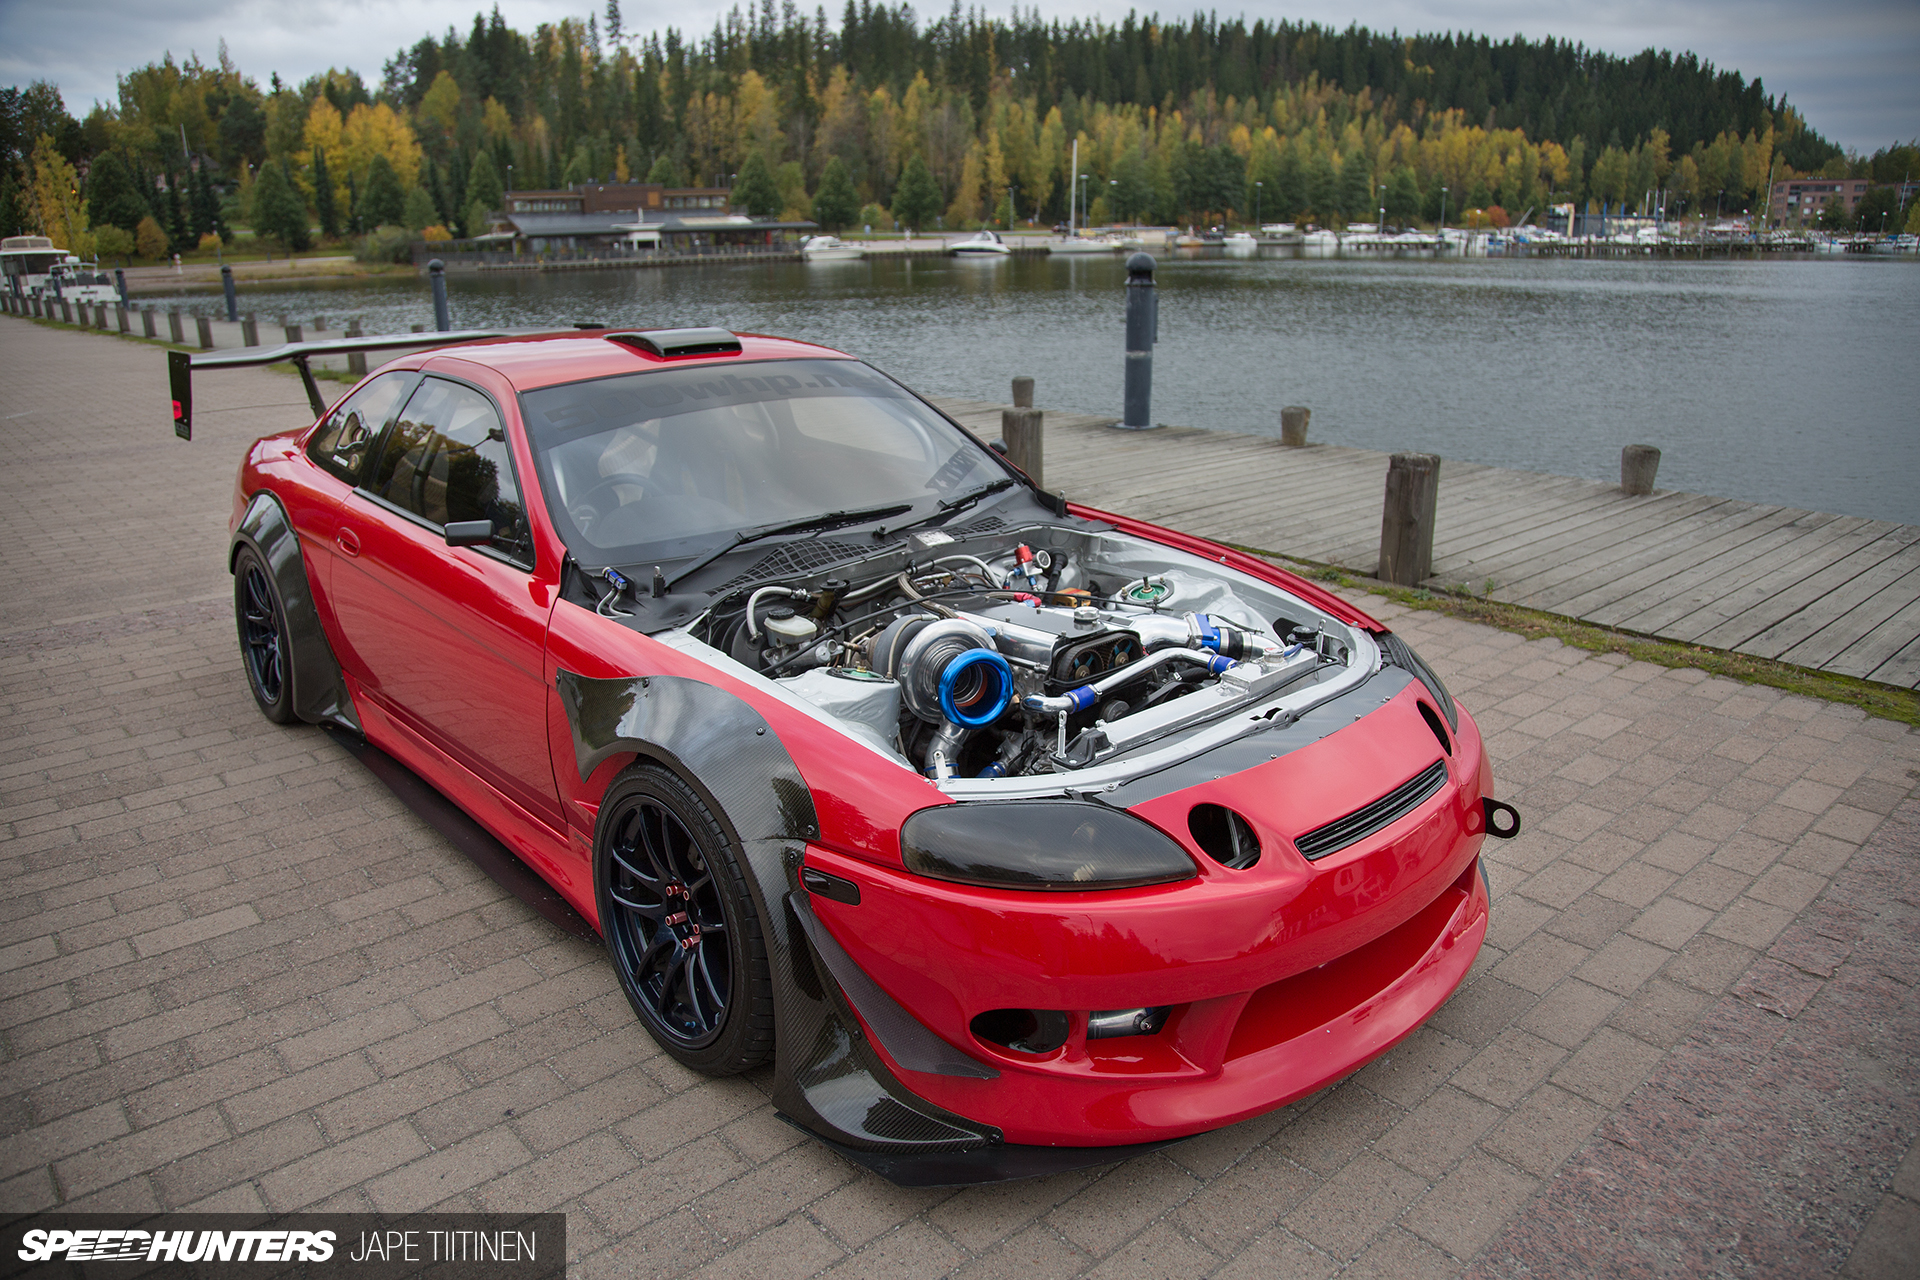 Sleeper Car Wallpaper Soaring From The Ashes With 900hp Speedhunters